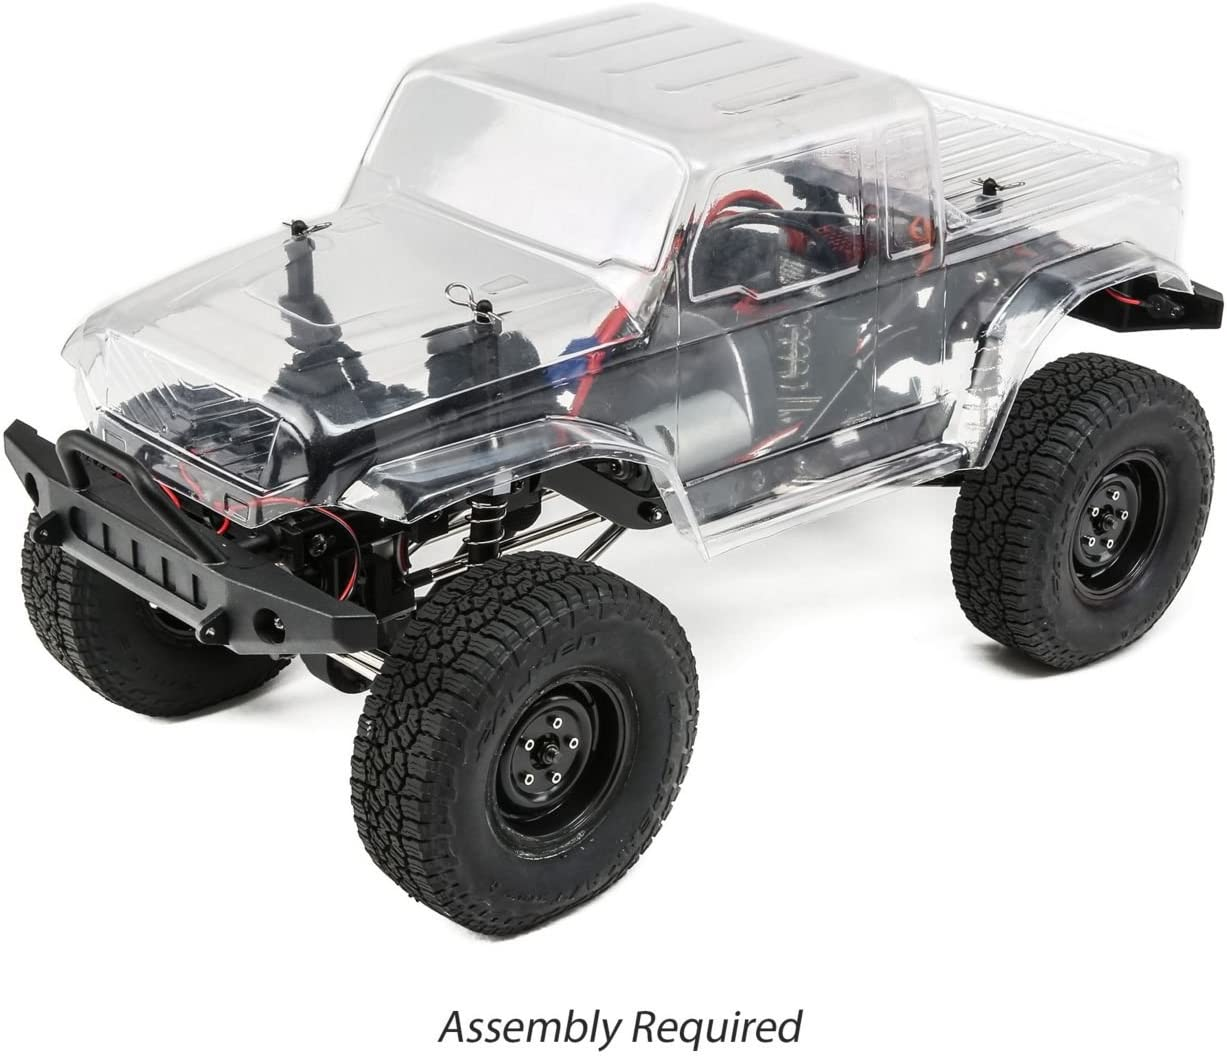 Top 5 Best RC Car Kits: Cool Options For You to Check Out 5